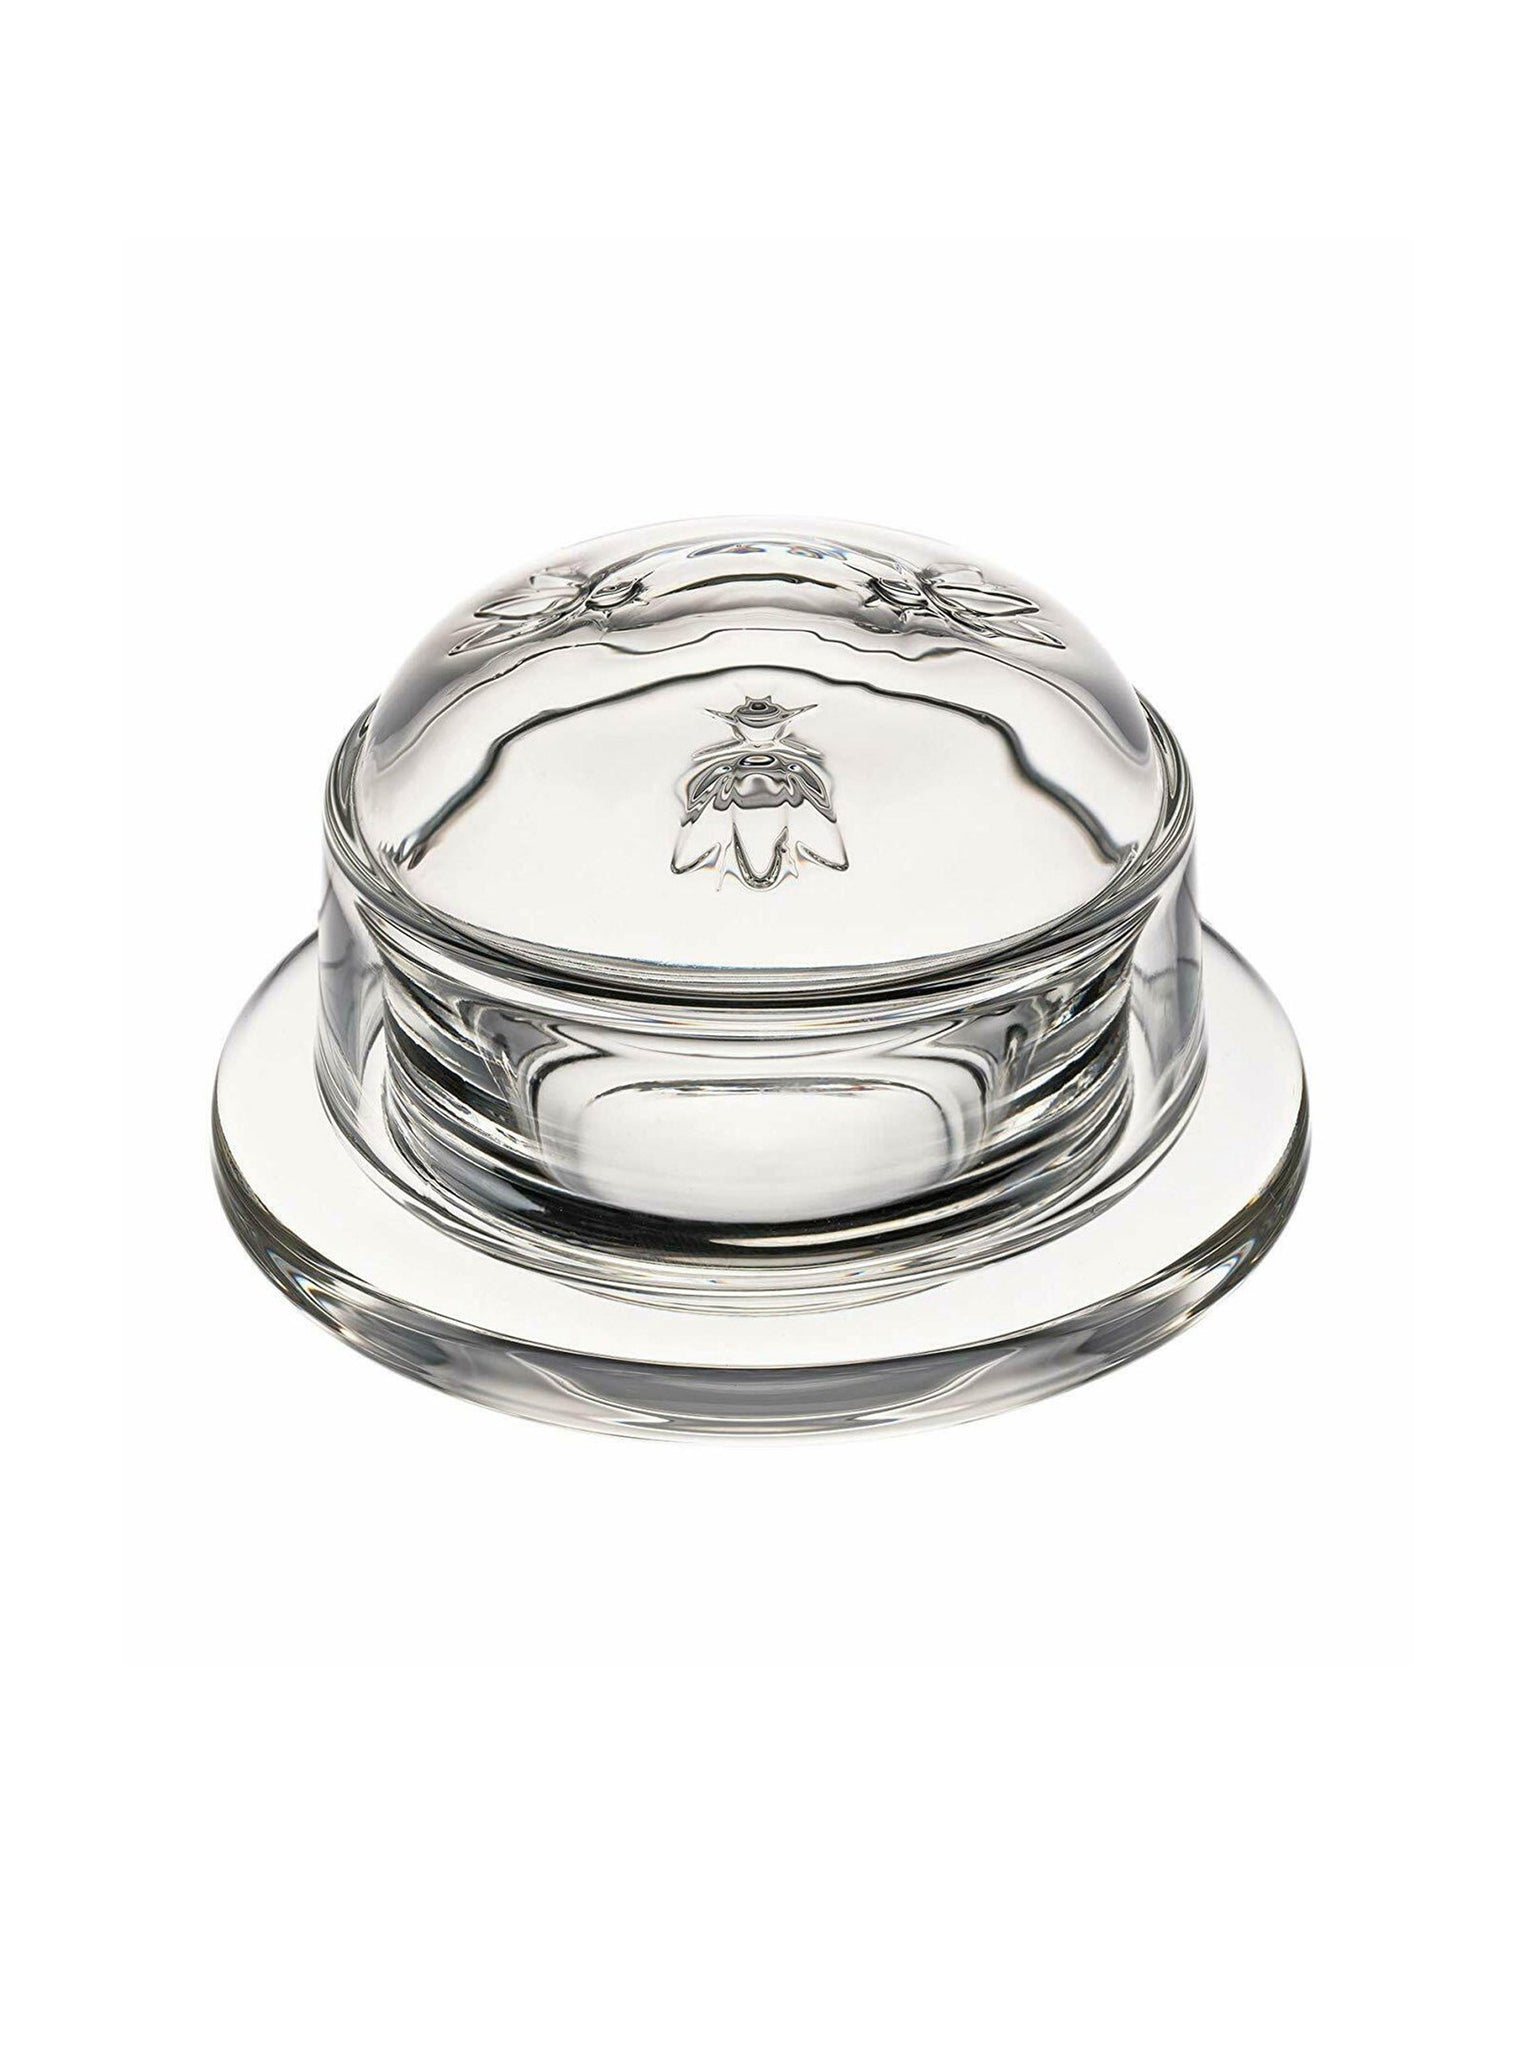 La Rochere Bee Butter Dish Weston Table